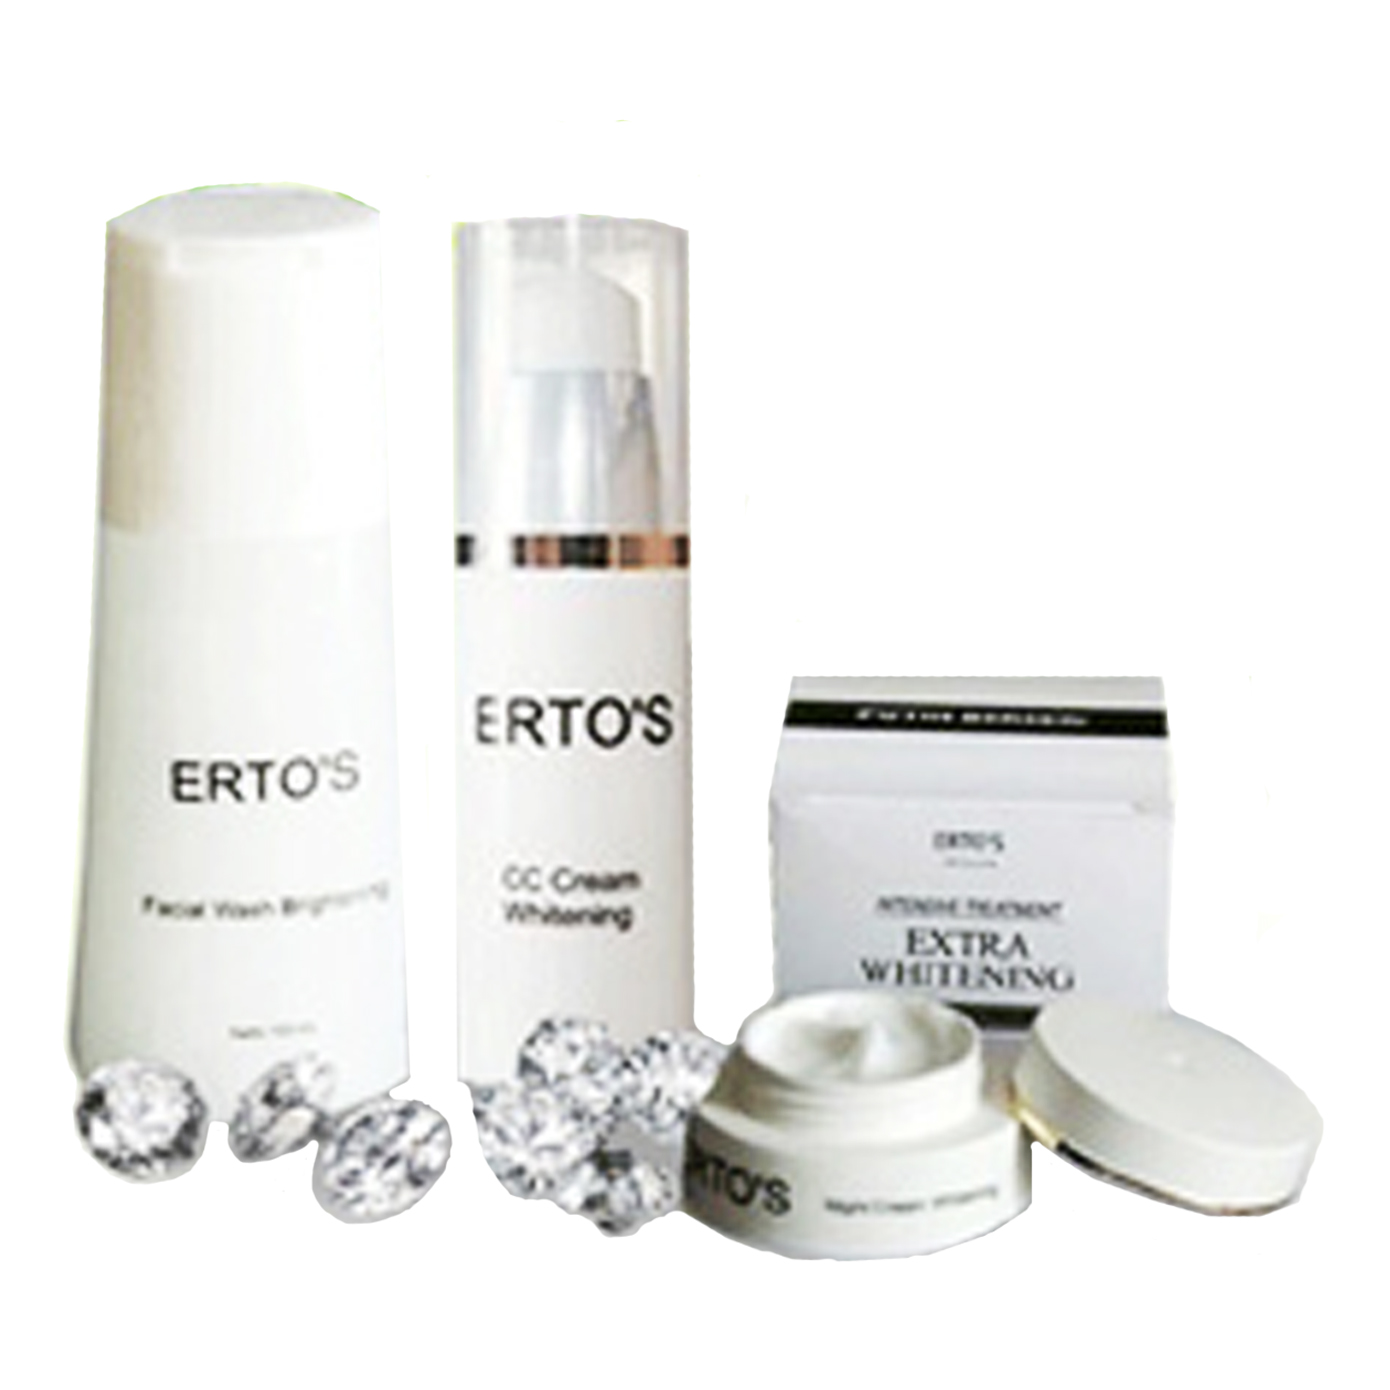 Ertos Serum Kinclong Anti Aging Pencerah Wajah Bpom Elevenia Night Cream 3pcs Paket Lengkap Cc Day Facial Wash